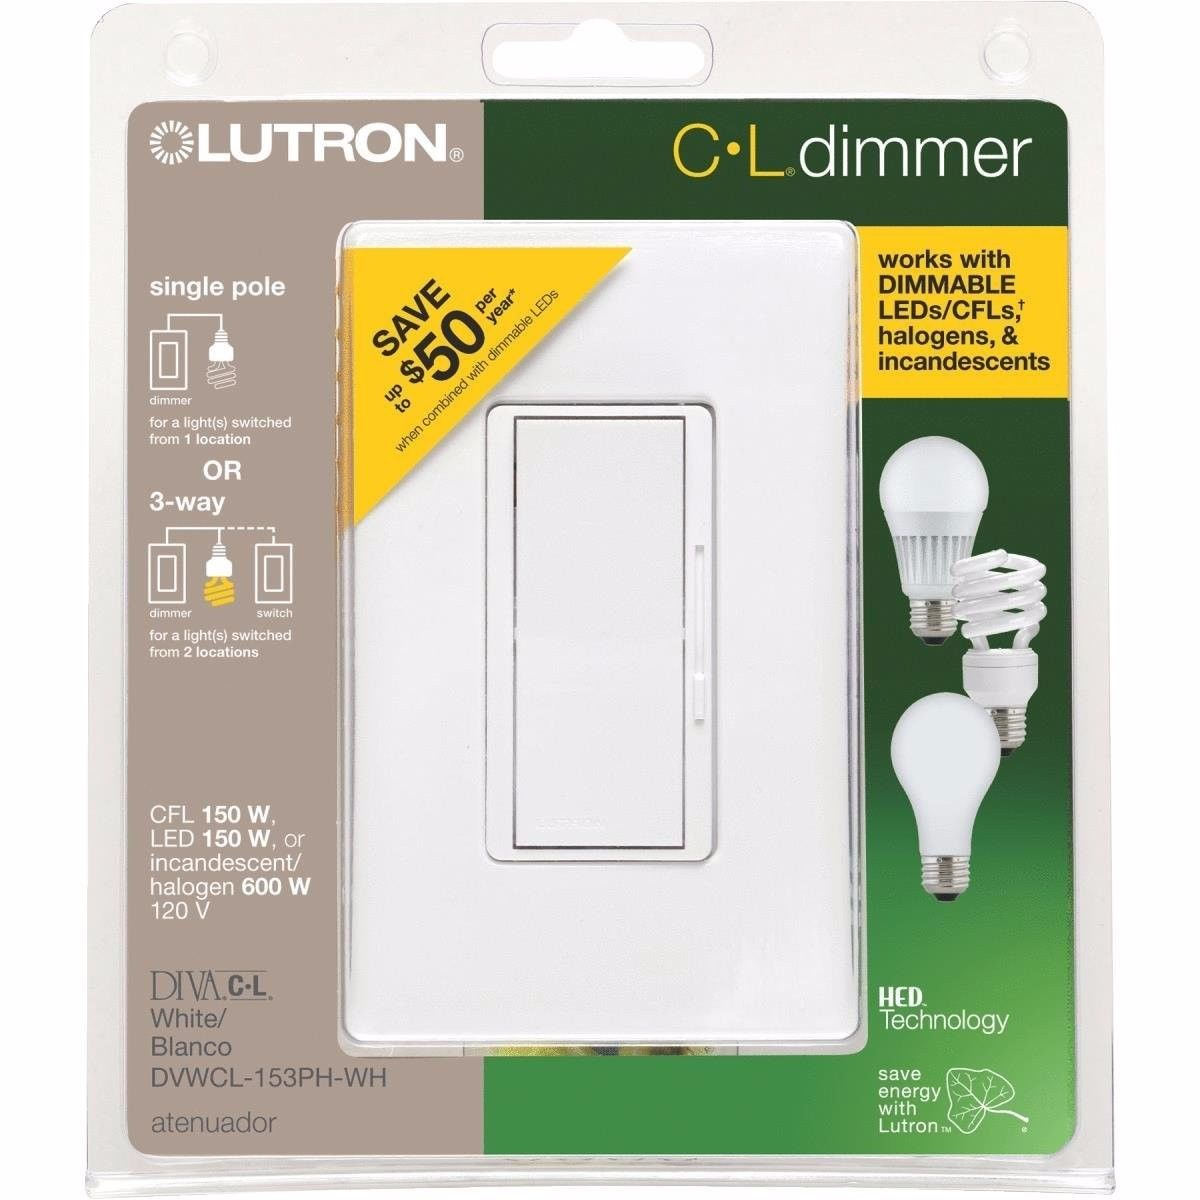 Lutron Diva Cl Dimmer For Dimmable Led Halogen And Incandescent 2 Pole 3 Way Slide Switch New Bulbs Single Or Open Box